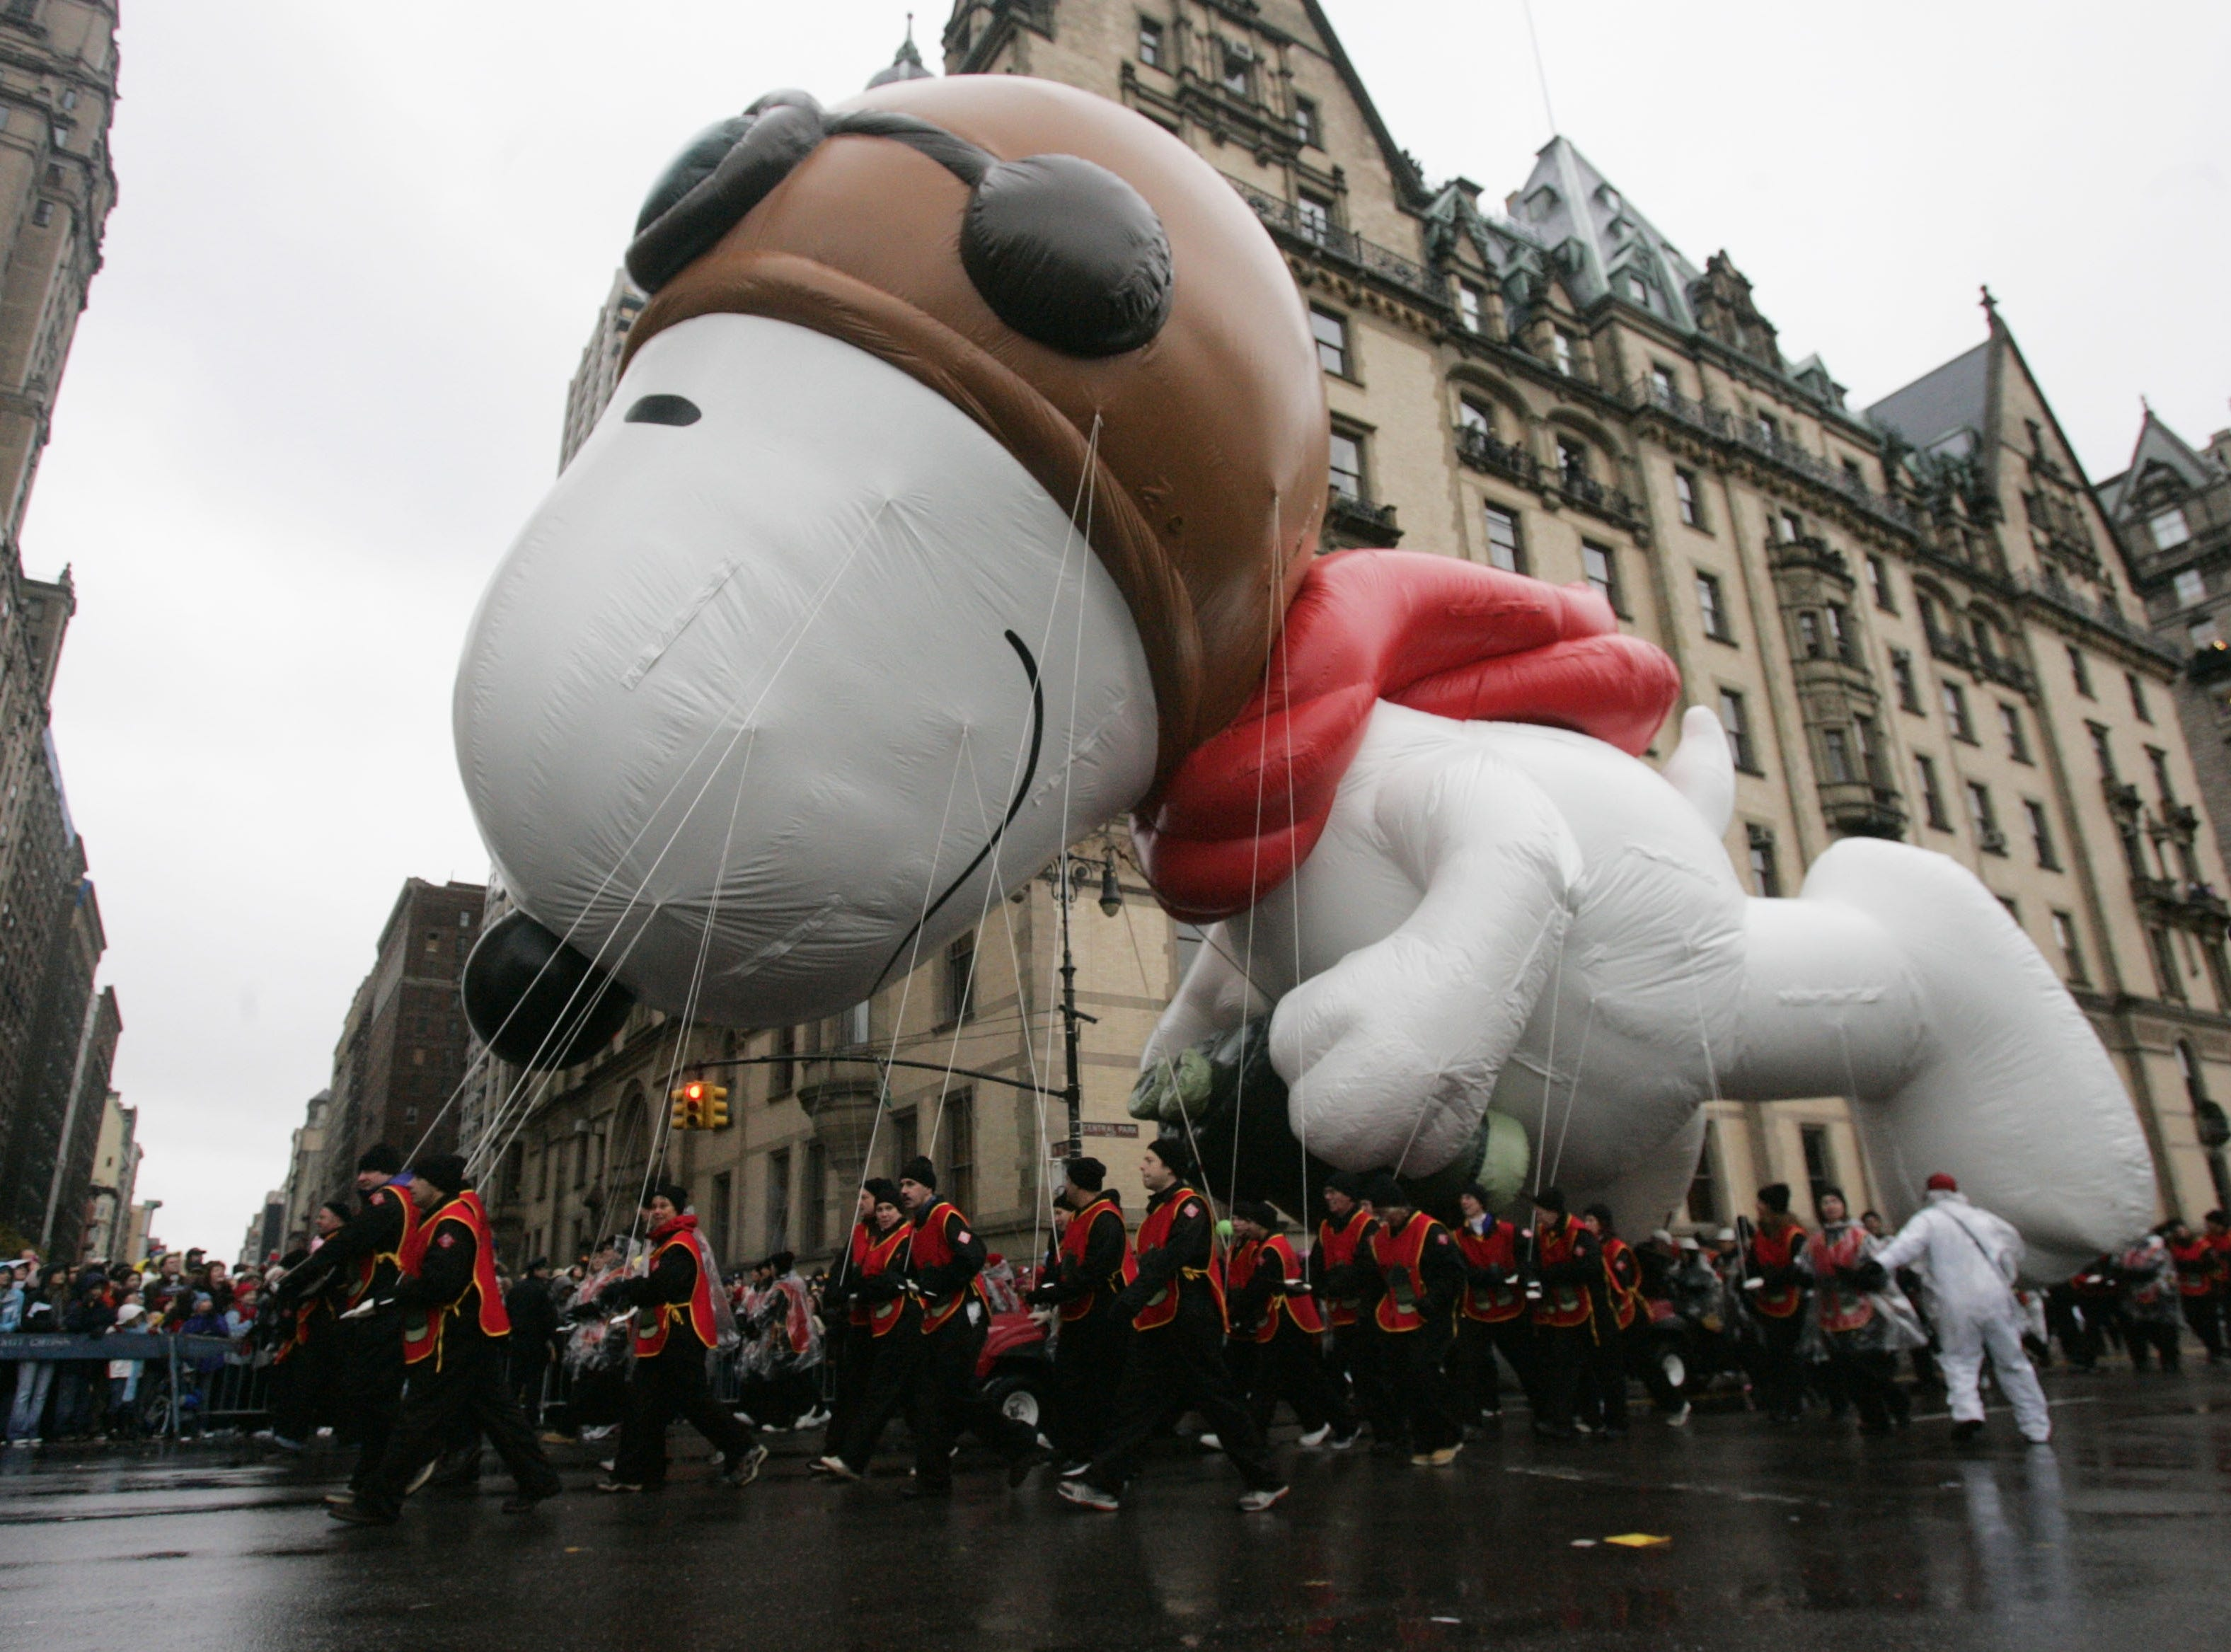 The Snoopy balloon makes its way down Central Park West at the beginning of the Macy's Thanksgiving Day Parade Thursday, Nov. 23, 2006 in New York. (AP Photo/Julie Jacobson)